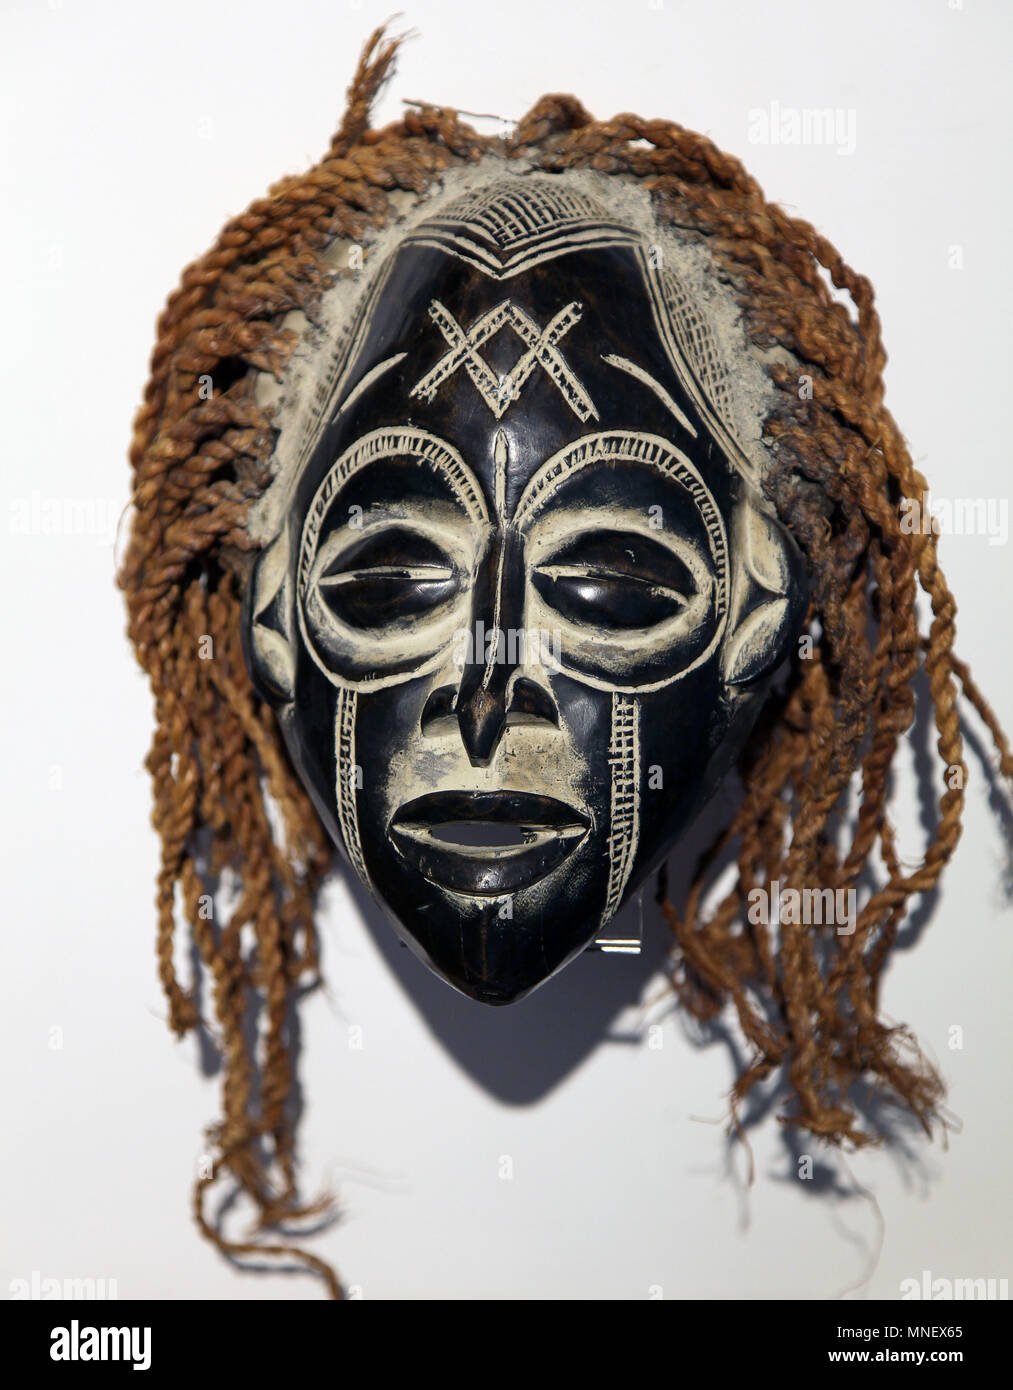 Chokwe mask from The Chokwe people aka Kioko Bajokwe Chibokwe Kibokwe Ciokwe Cokwe or Badjok.found in Angola Democratic Republic of Congo and Zambia. - Stock Image